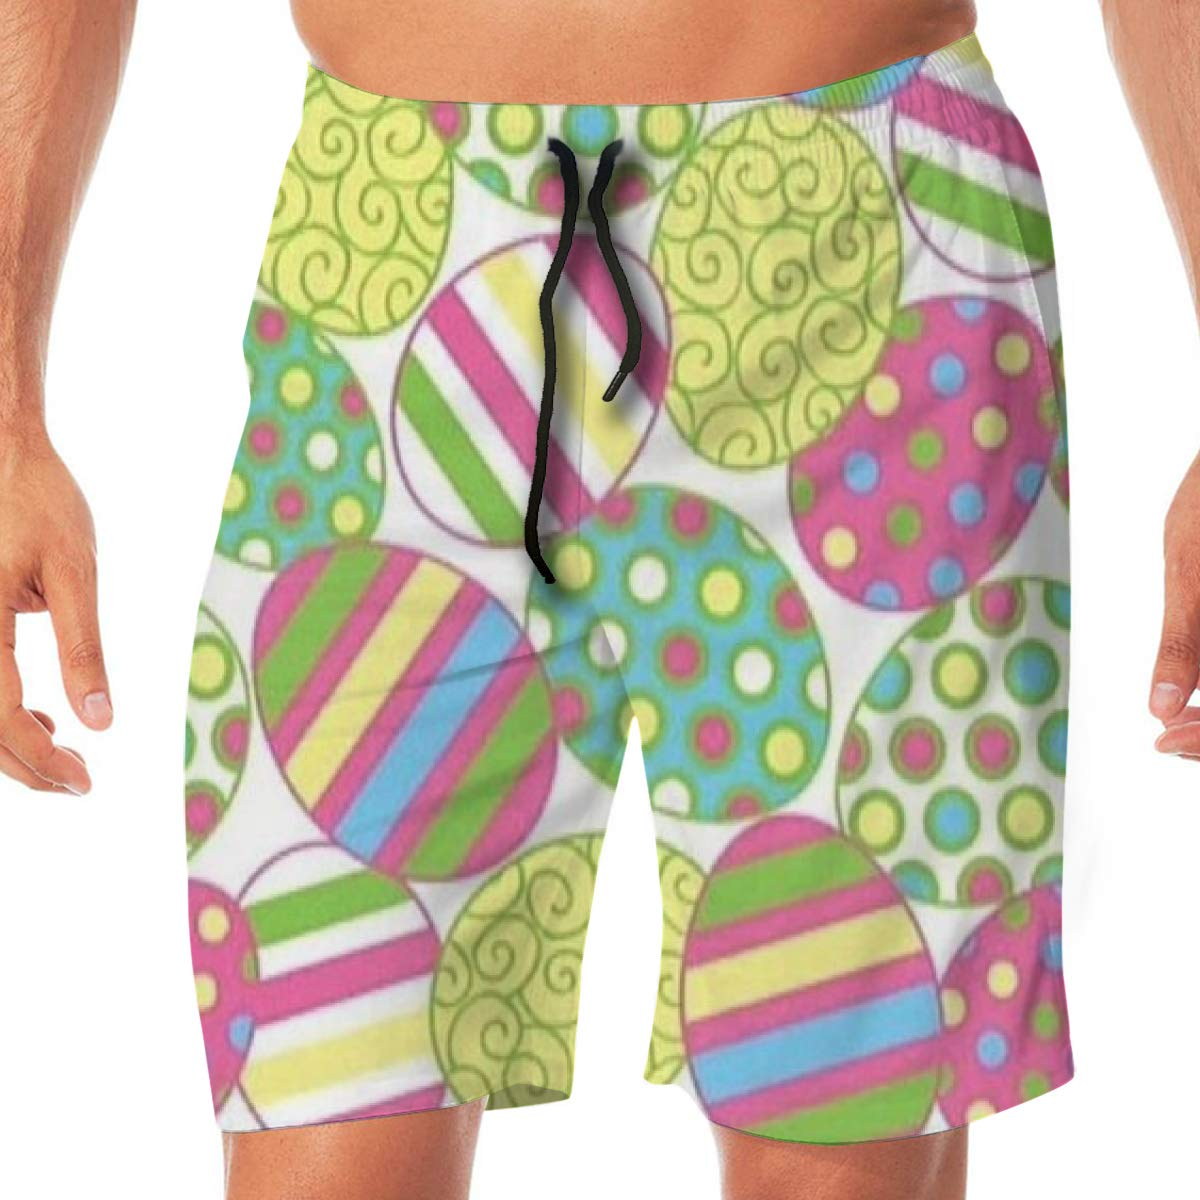 Woxianghe Mens Active Athletic Performance Shorts with Pockets Easter Egg